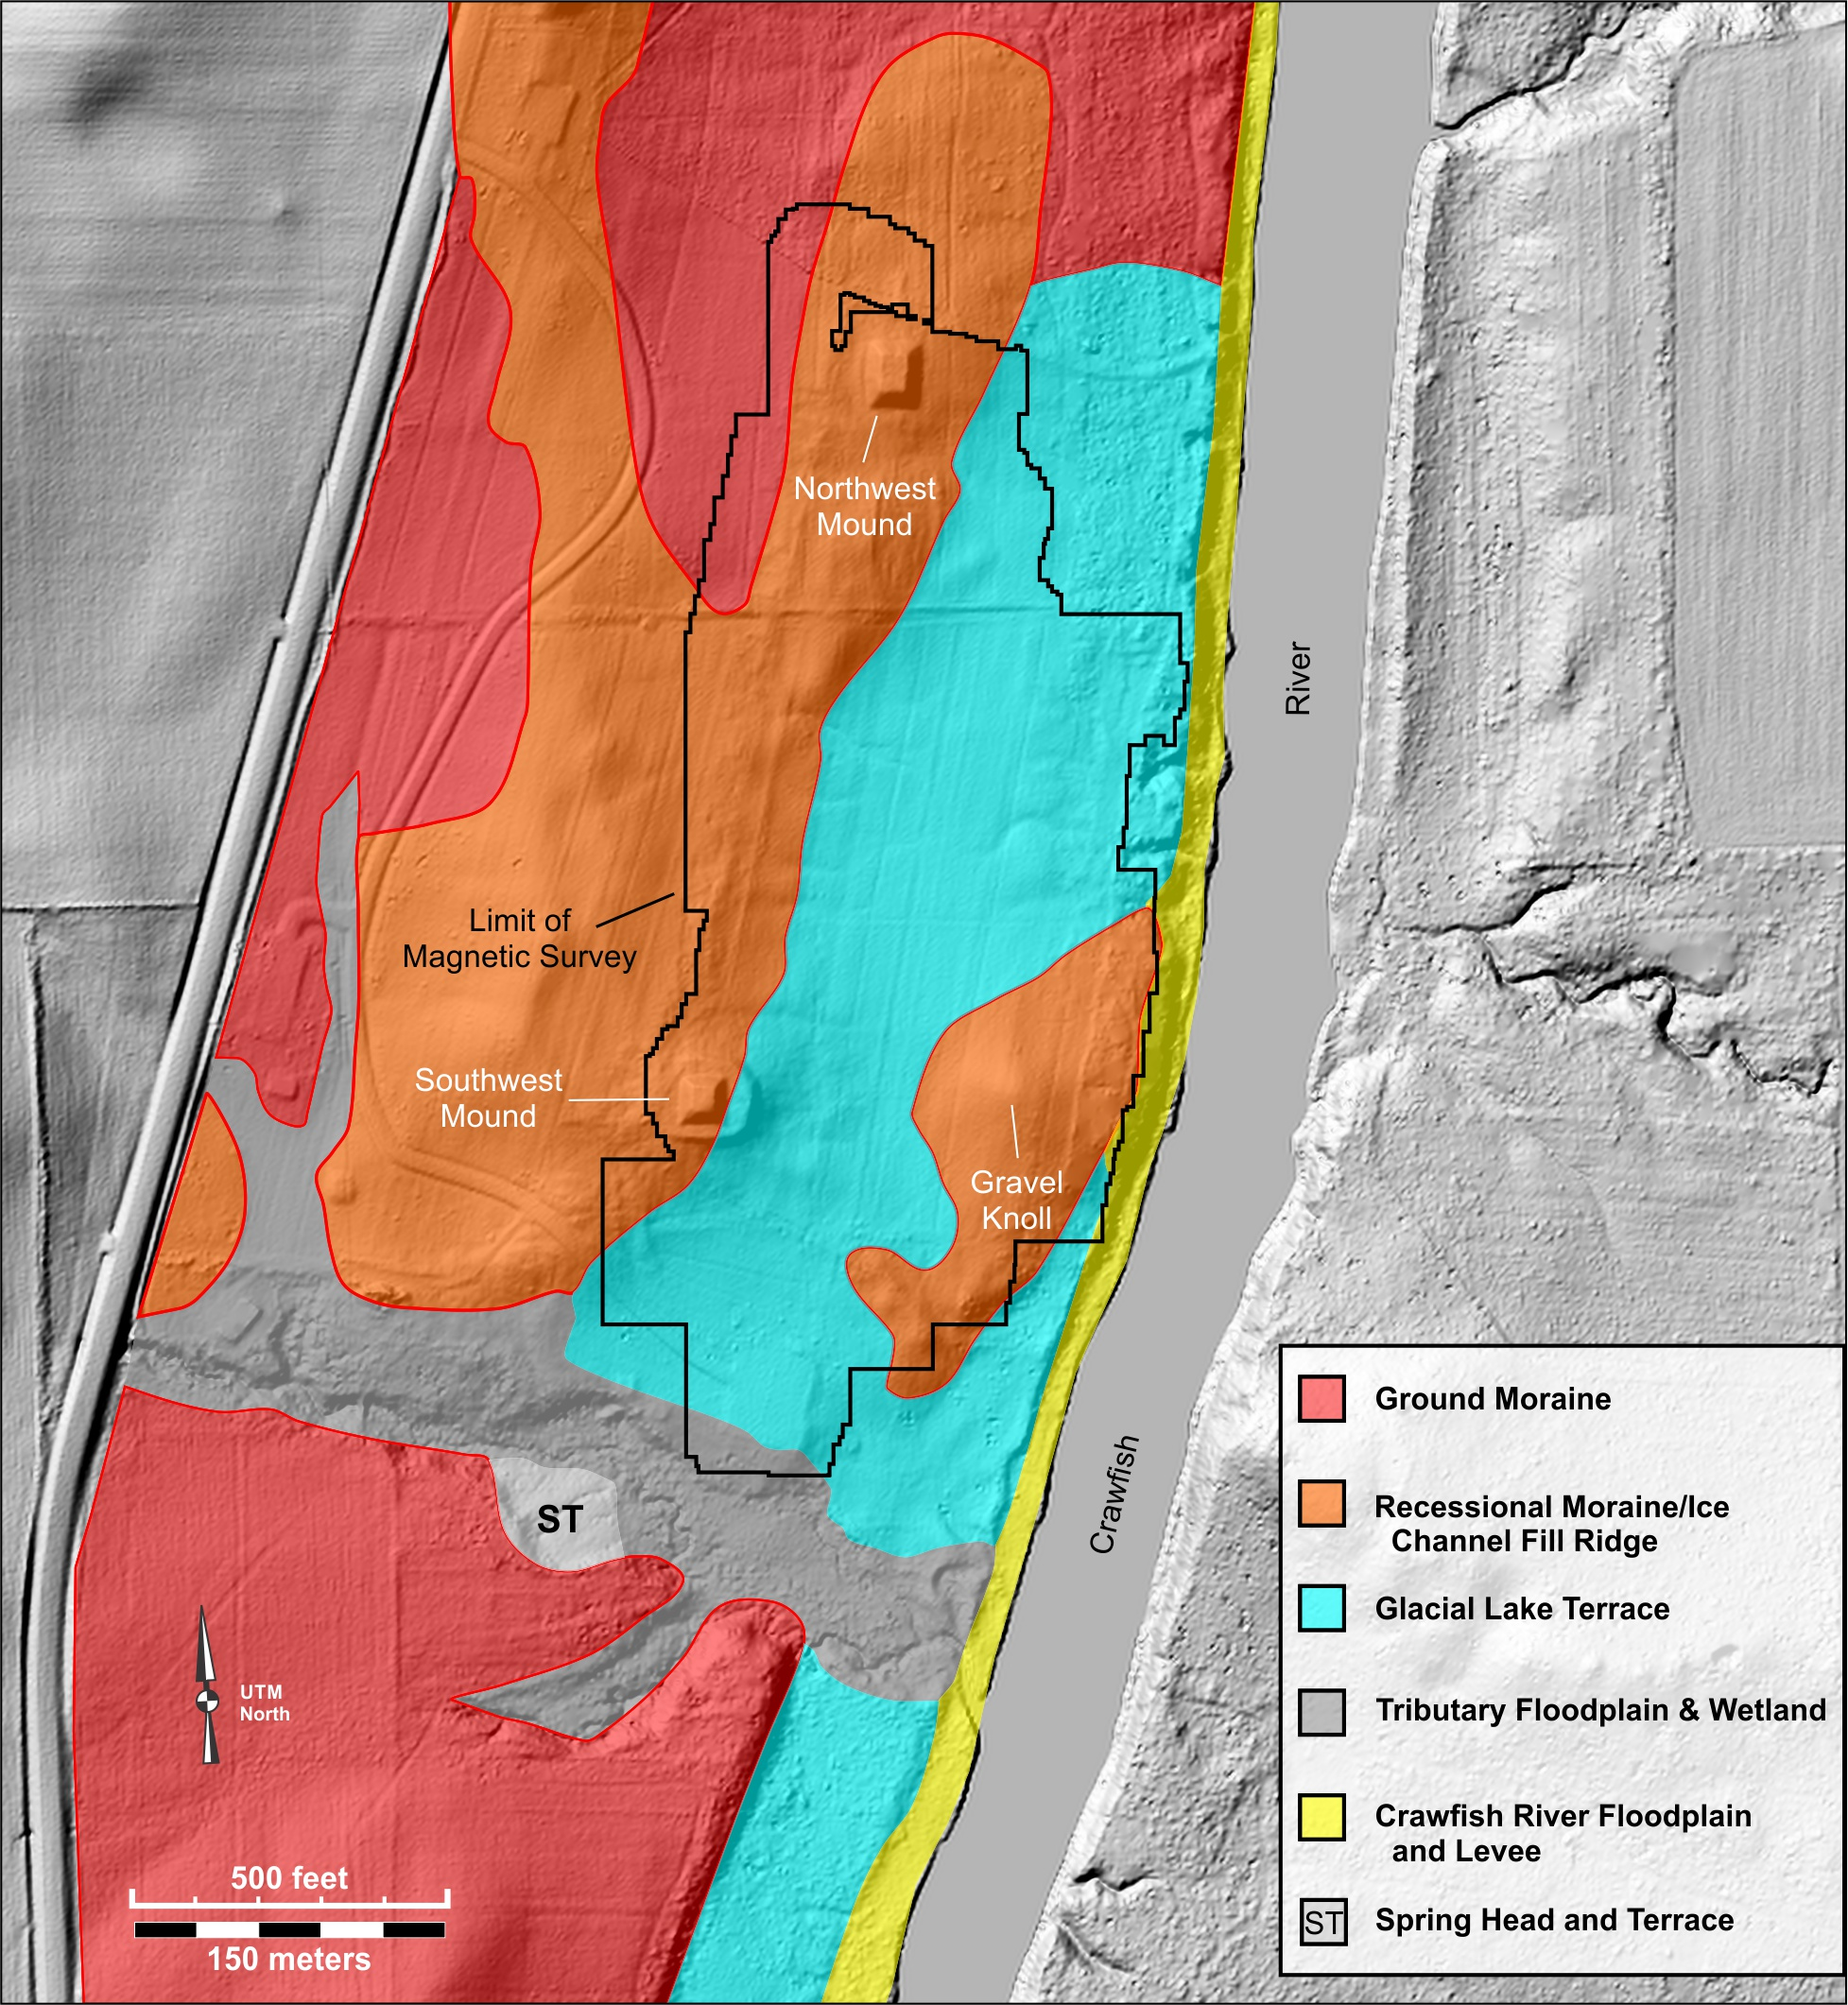 Figure 3. Major geomorphic zones in the Aztalan State Park area overlaid on the 2012 LiDAR-based digital surface model